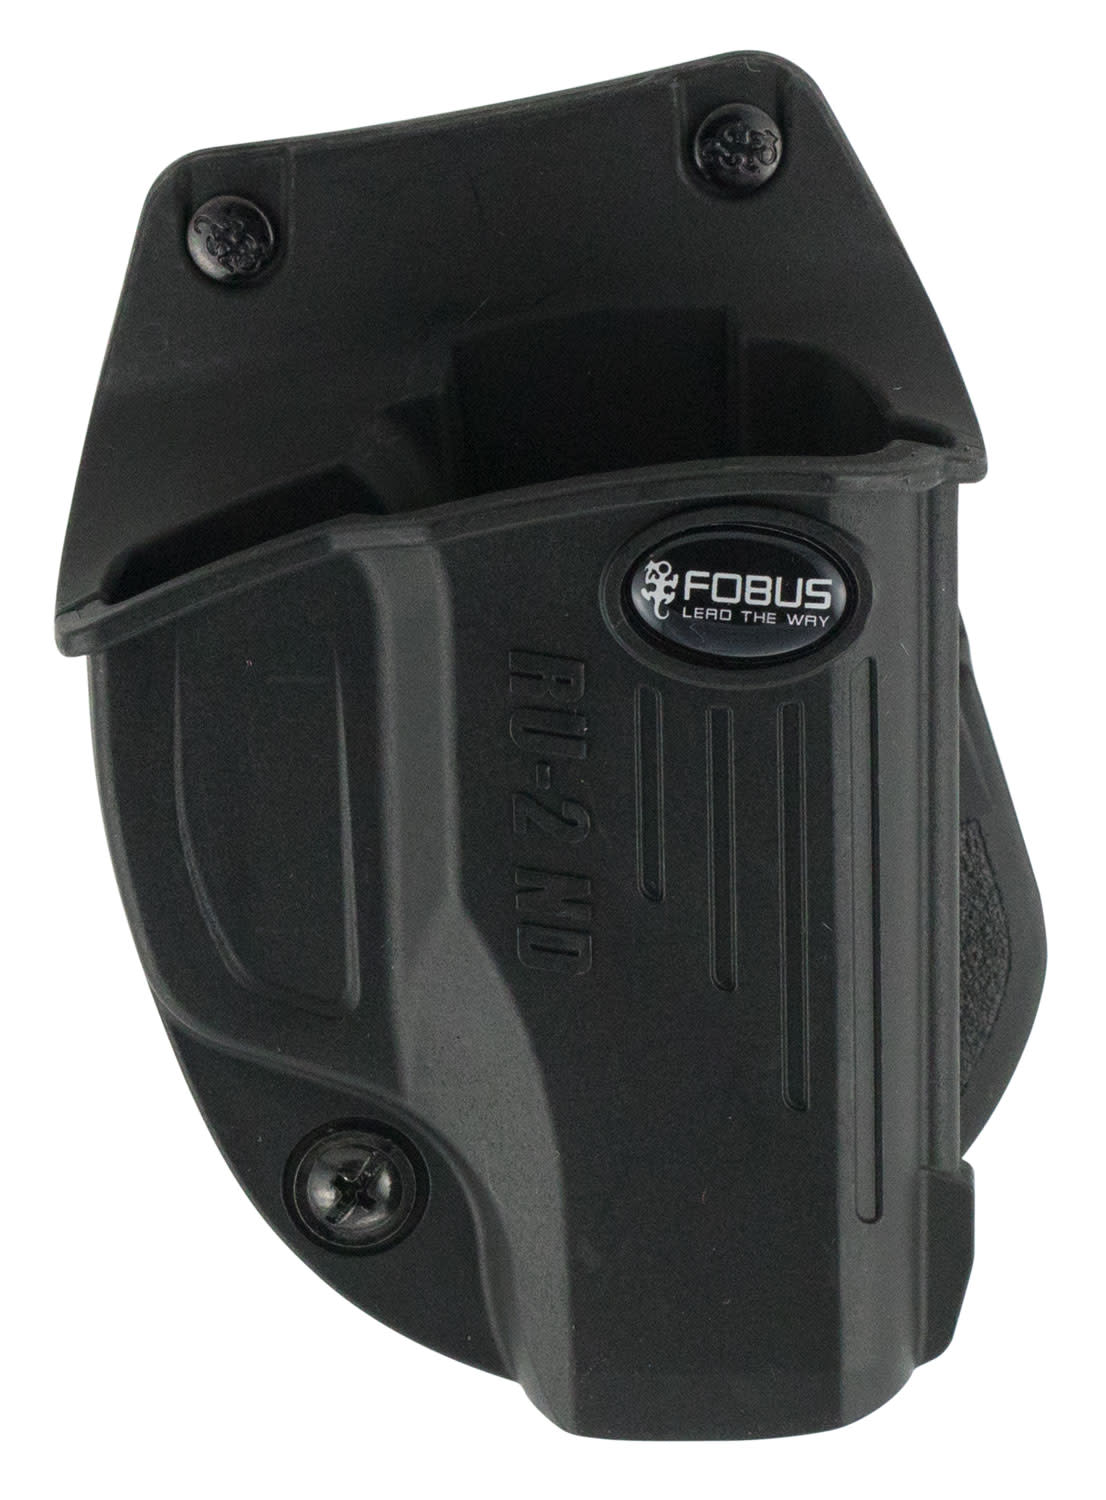 Fobus Evolution Paddle Holster - S&W Bodyguard